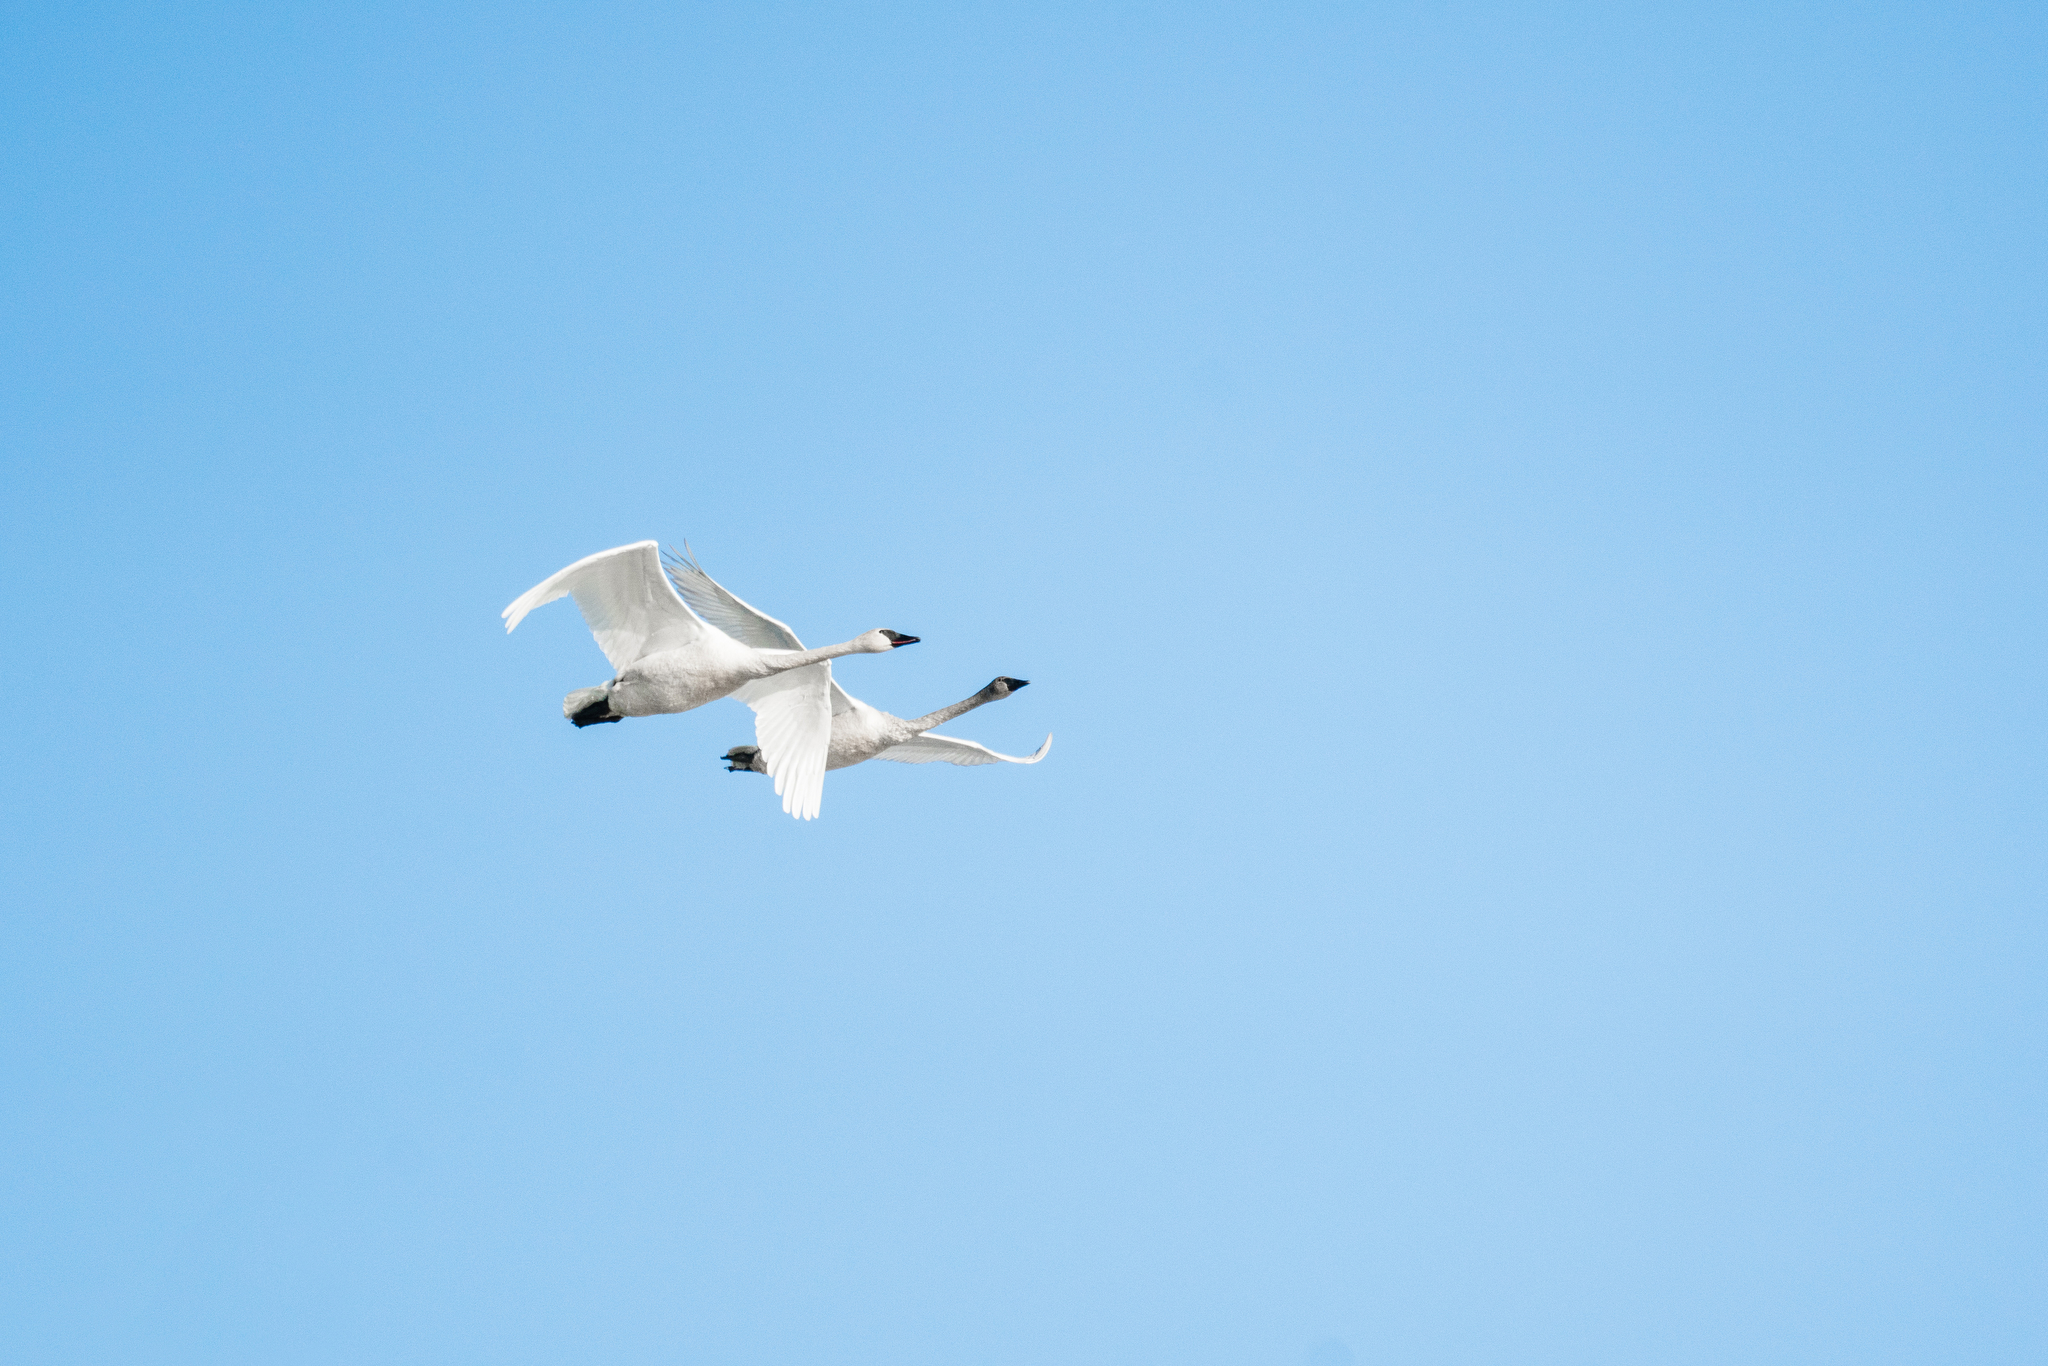 Tundra Swans Flying in Minnesota